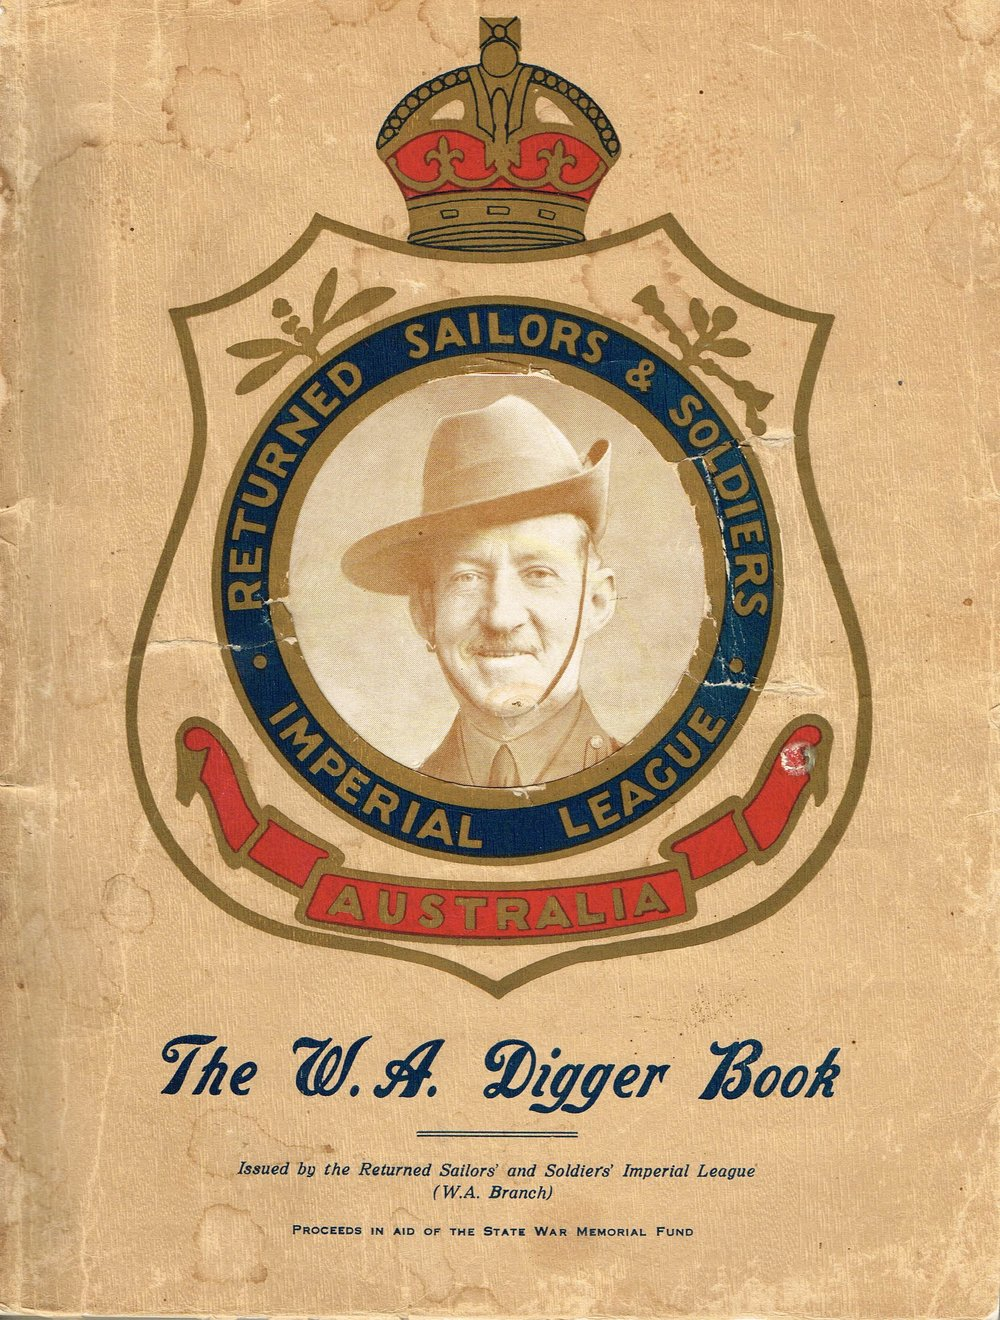 The W.A Digger Book Issued by the Returned Sailors' and Soldiers' Imperial League (W.A. Branch)